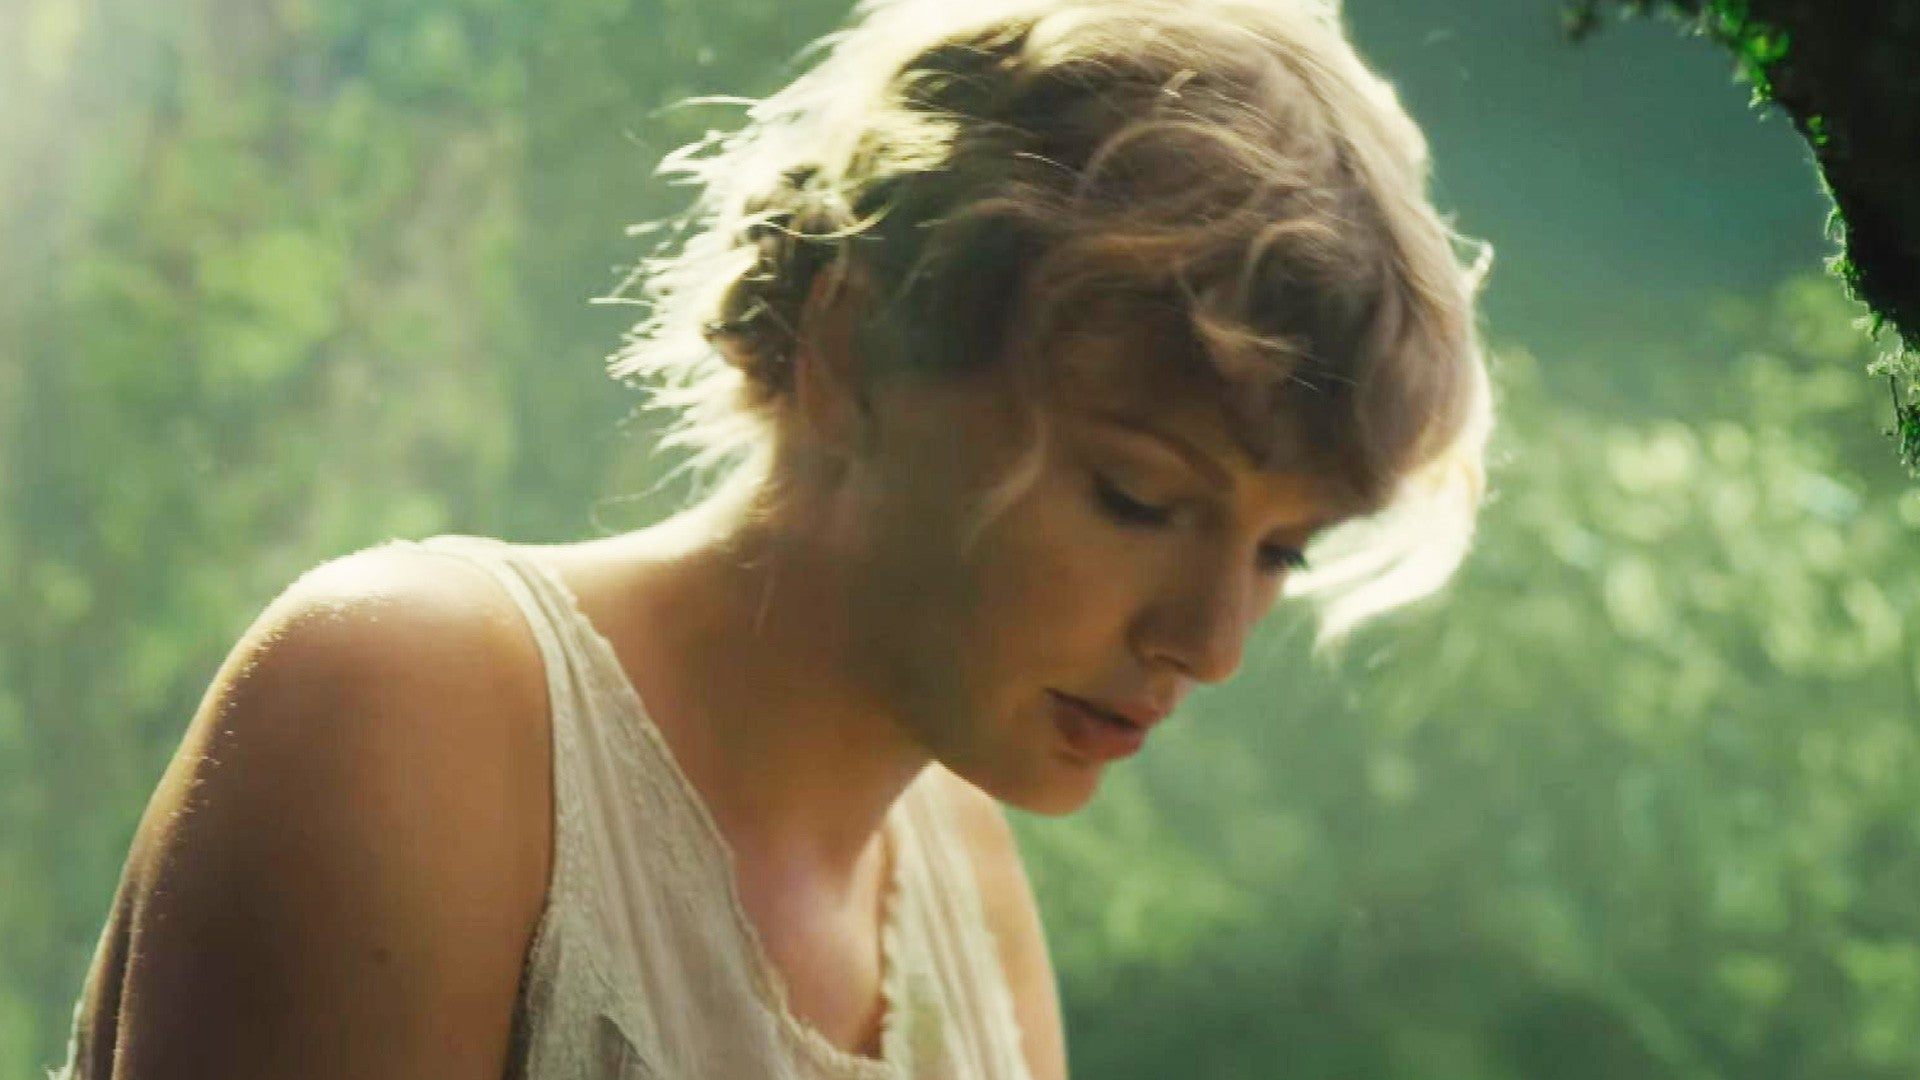 Inside Taylor Swifts Folklore All the Lyrics Easter Eggs and 1920x1080